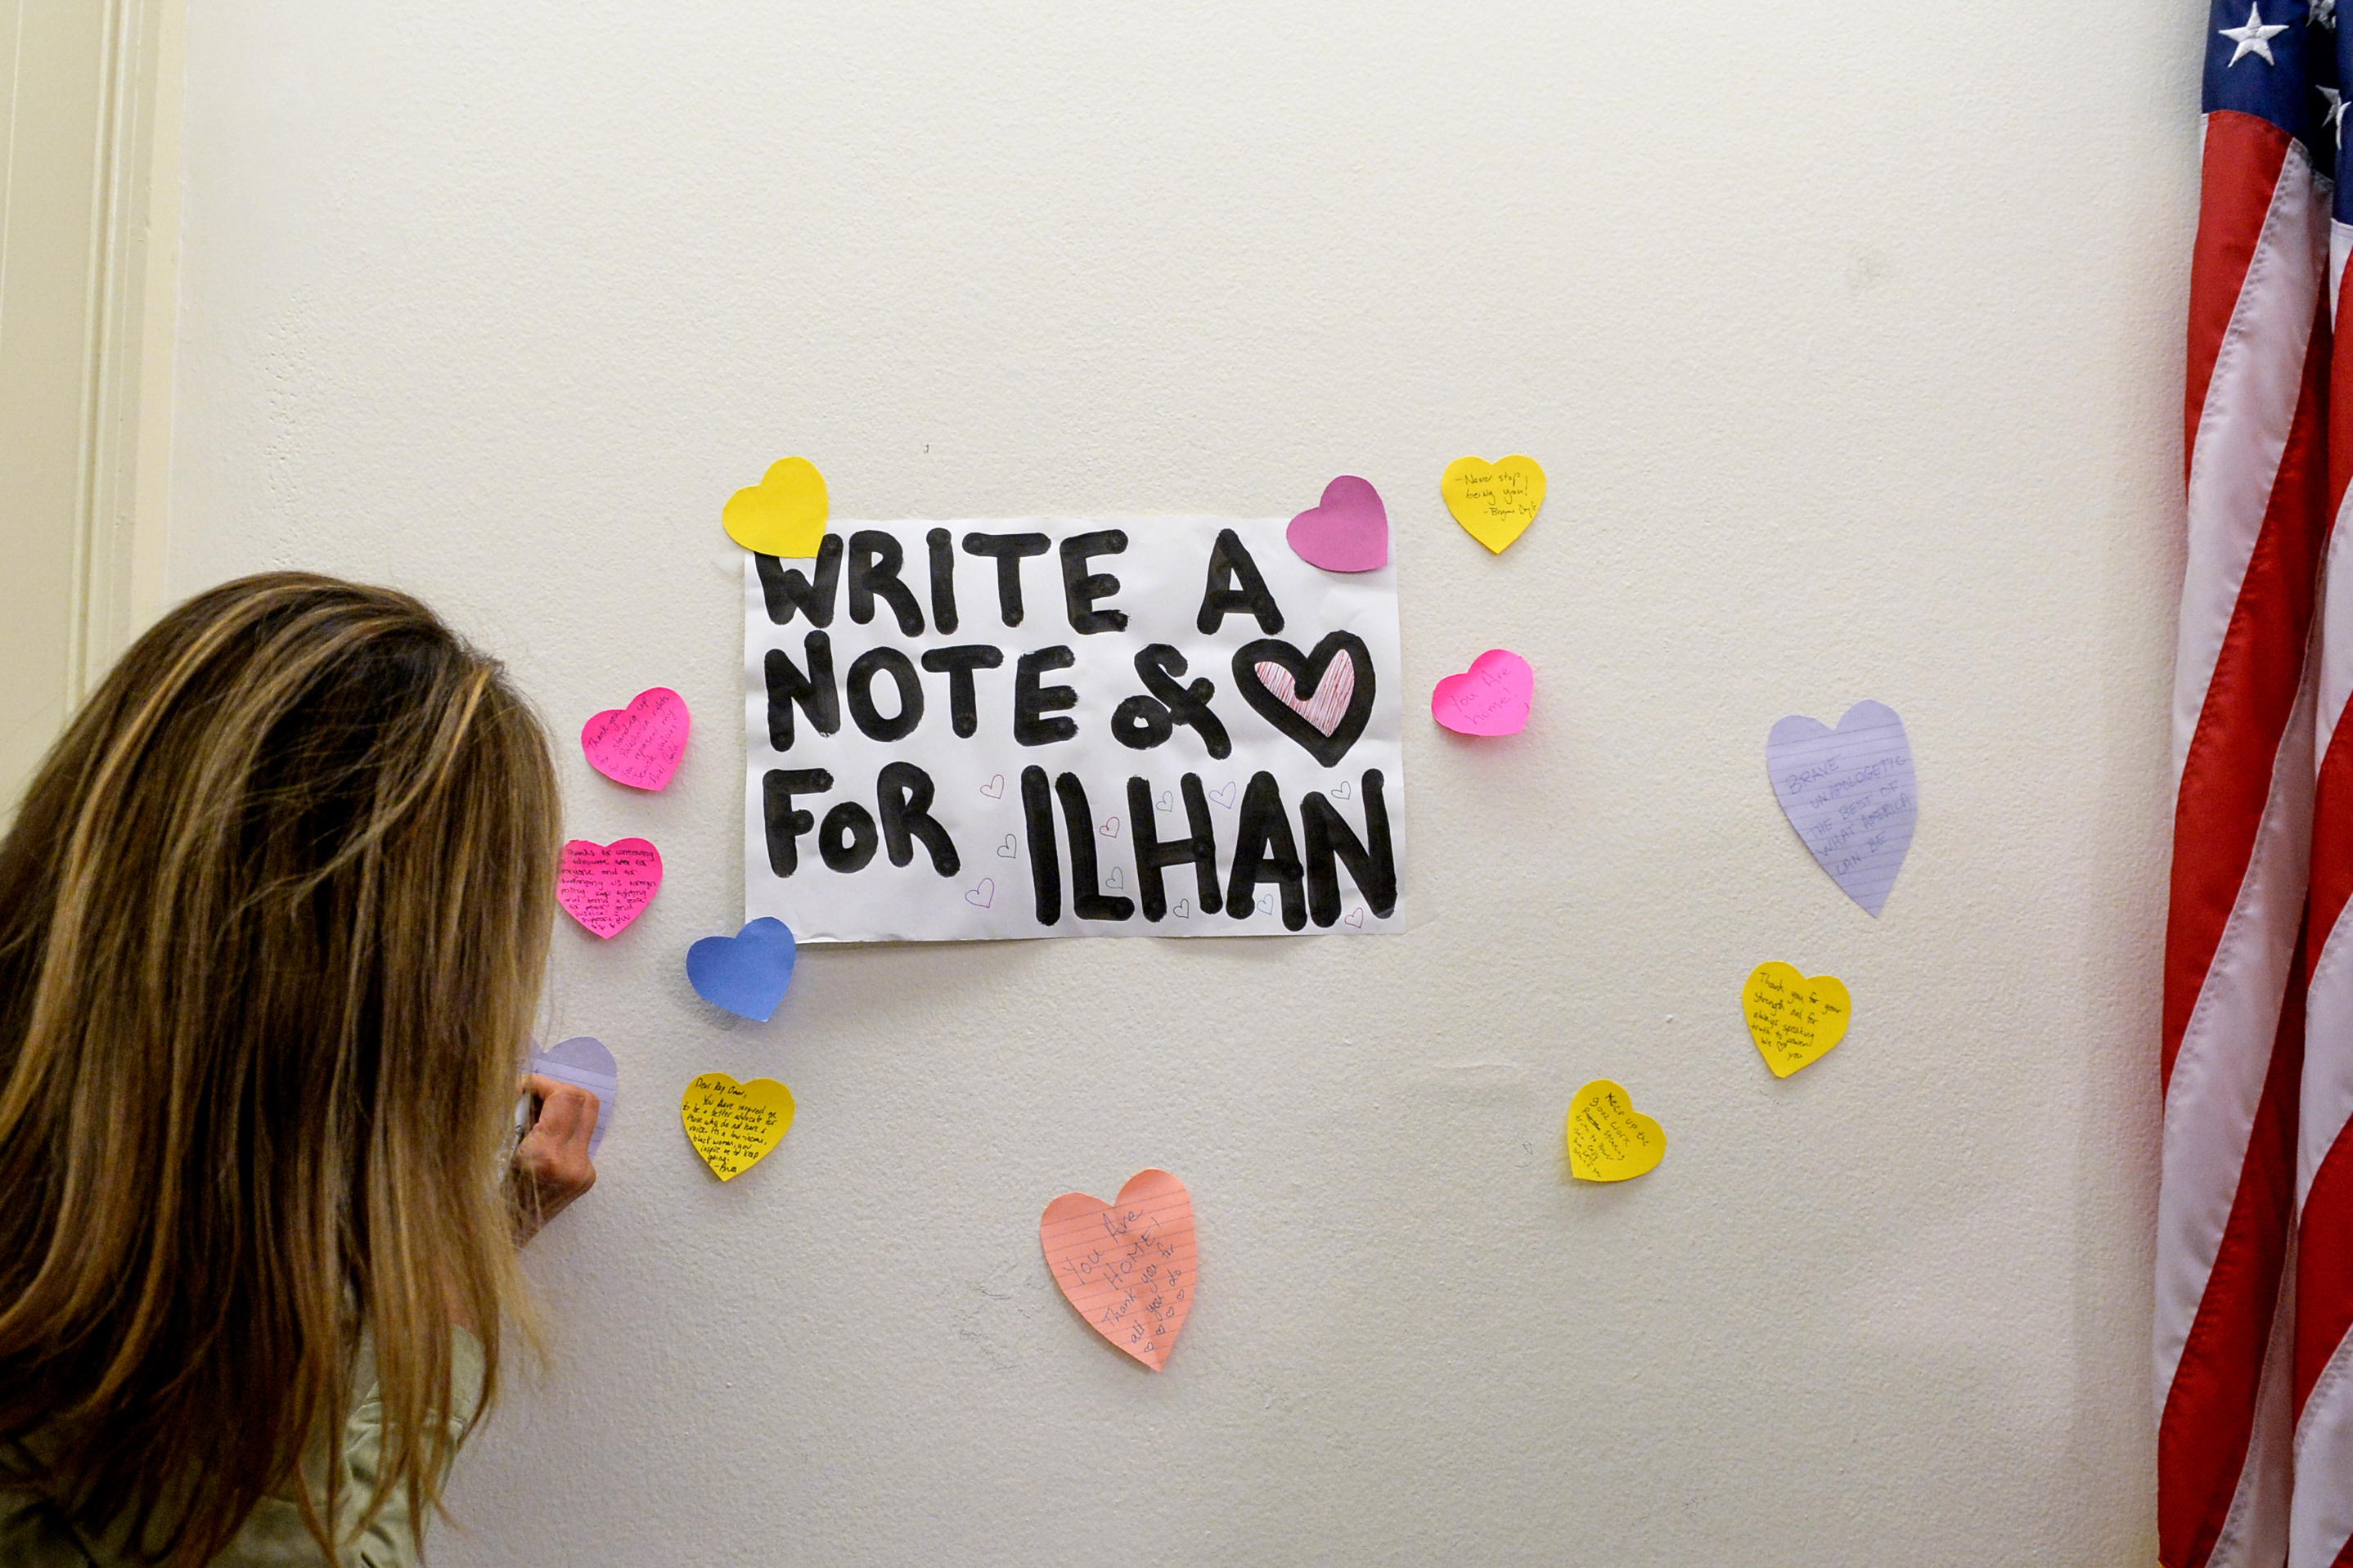 UNITED STATES - JULY 19: A visitor writes an inspiring notes outside of the office of Rep. Ilhan Omar, D-Minn., after attacks from President Trump days before at the Longworth Building at the Capitol on Friday July 19, 2019. (Photo by Caroline Brehman/CQ Roll Call)